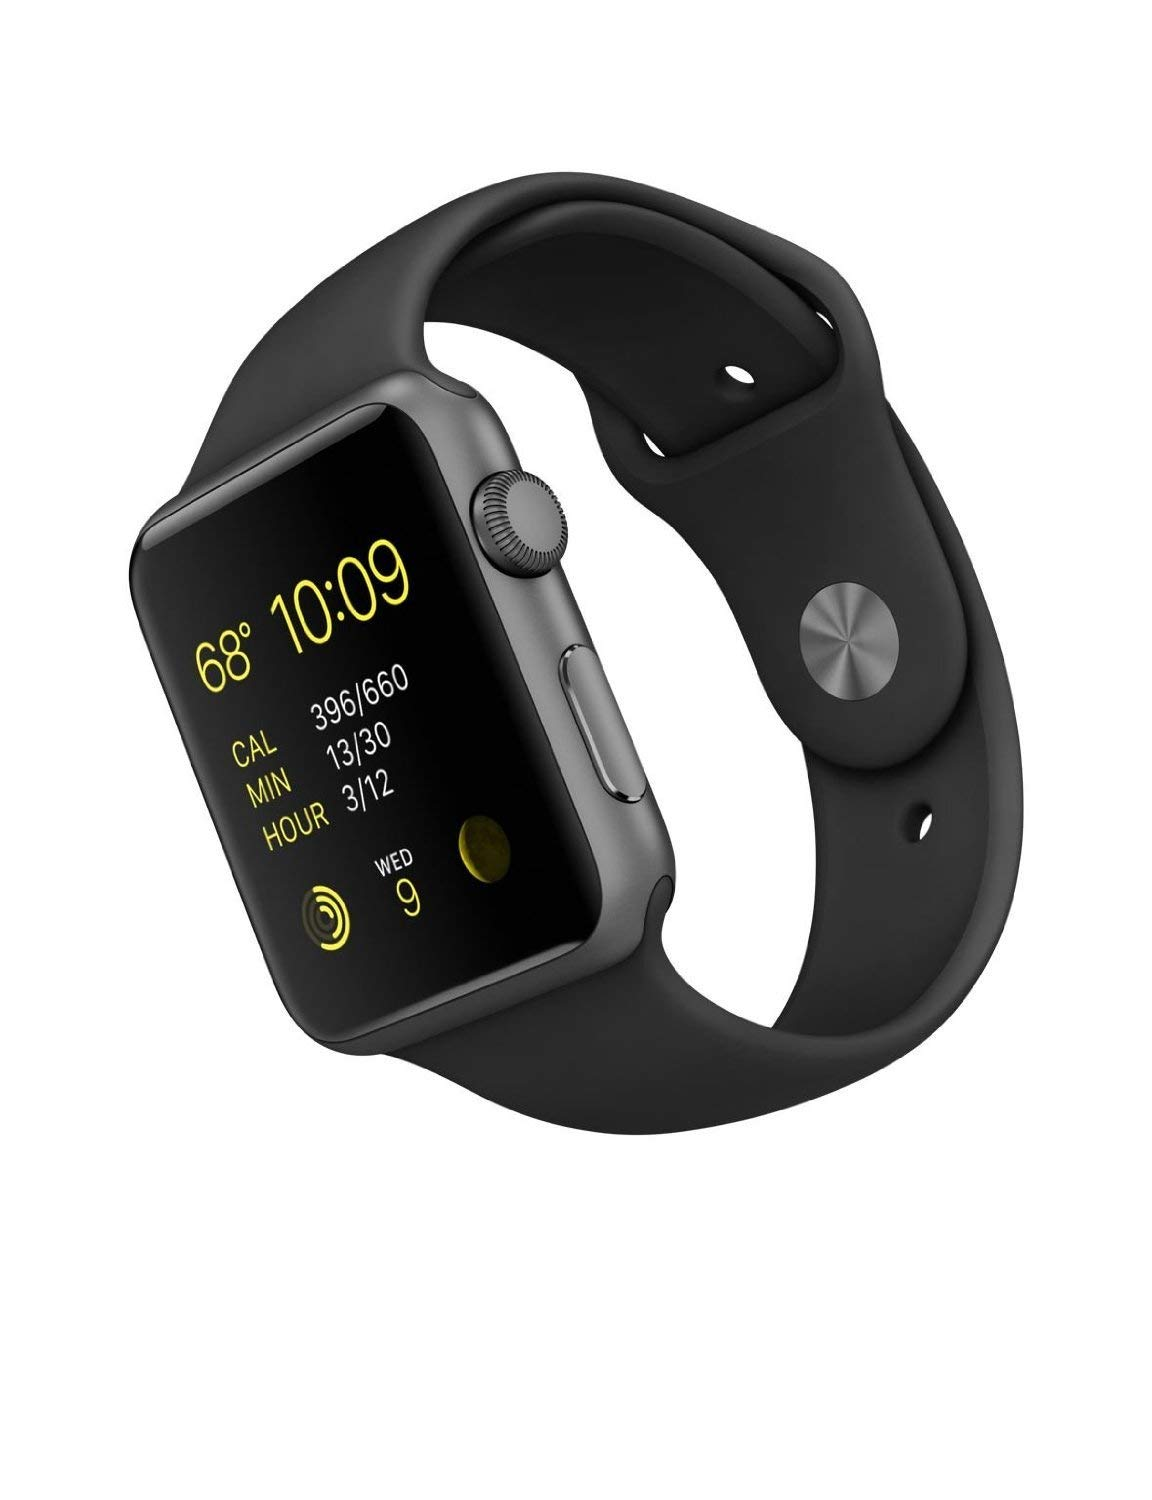 Apple-Watch-Series-1-38mm-with-Sport-Band-MP022LL-A thumbnail 11